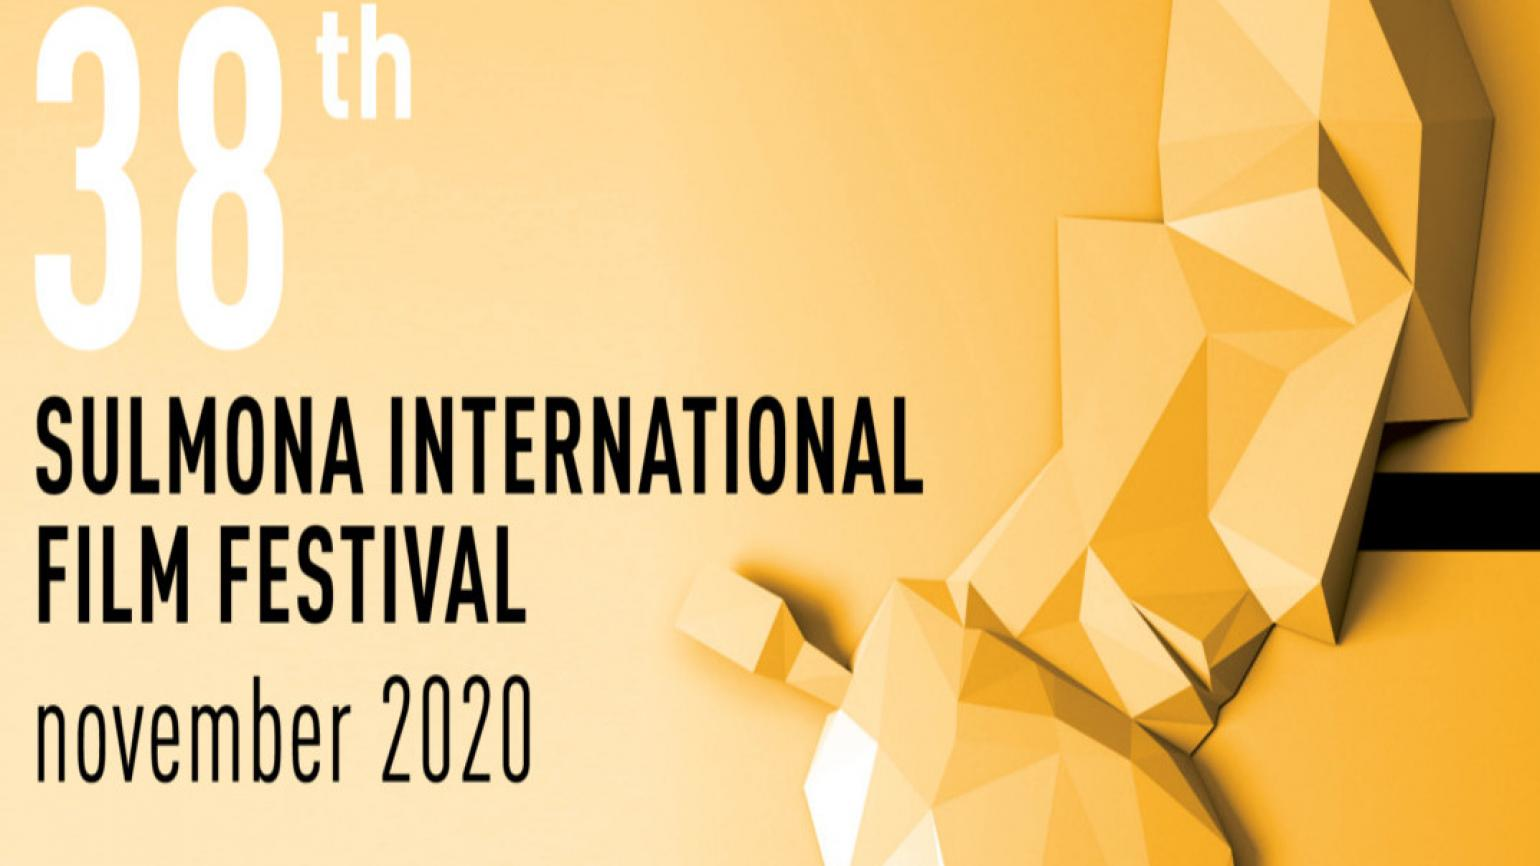 38° Sulmona International Film Festival